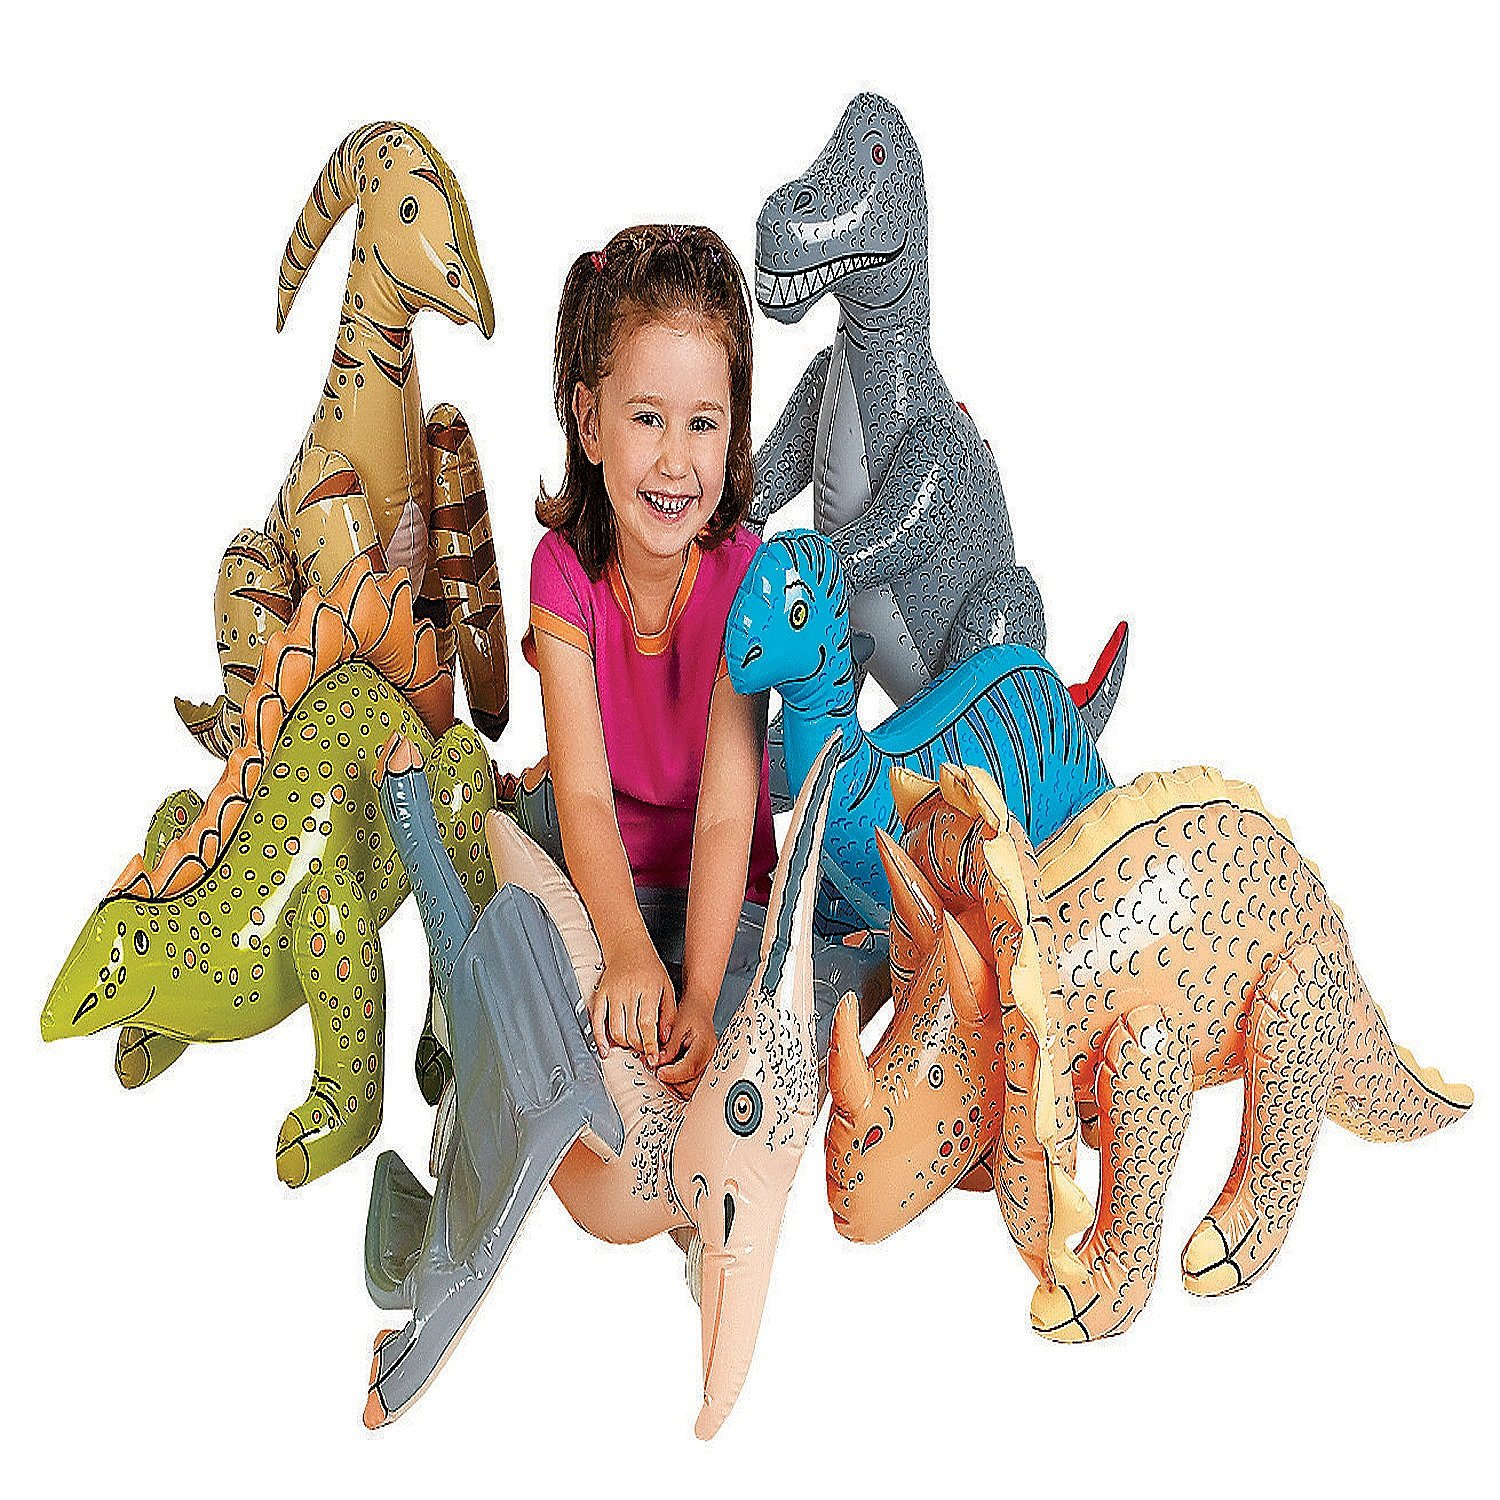 Inflatable Dinosaur 27 To 30 Play For Kids By Kidsco Kayco USA Party Favors Gift Prize Assorted Colored Prehistoric Inflatable Dinosaurs Fun Toy Set Of 6 Swimming Pool